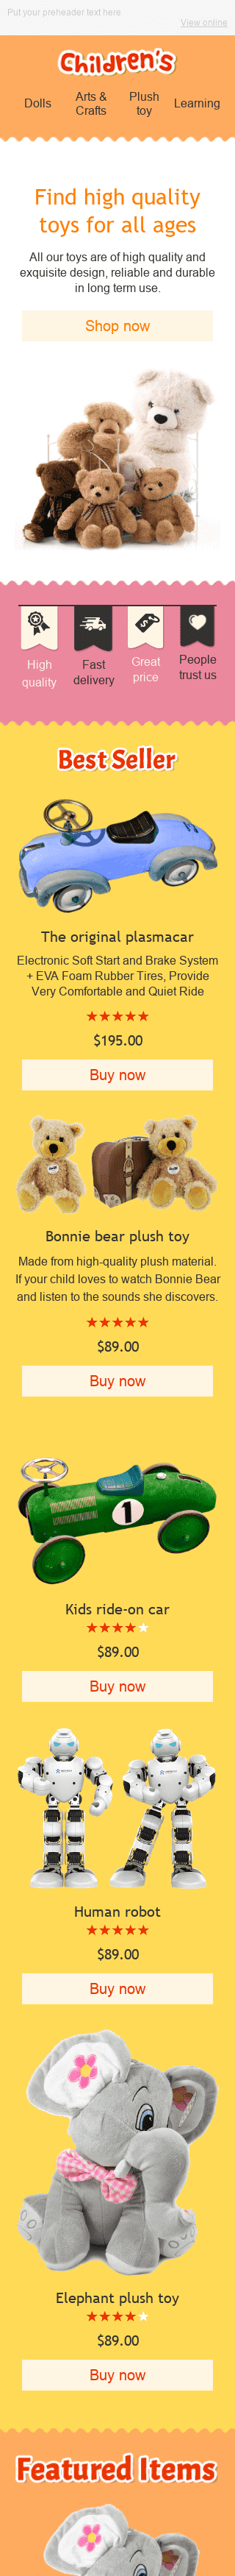 "Promo Email Template ""Funny Toys"" for Kids Goods industry mobile view"